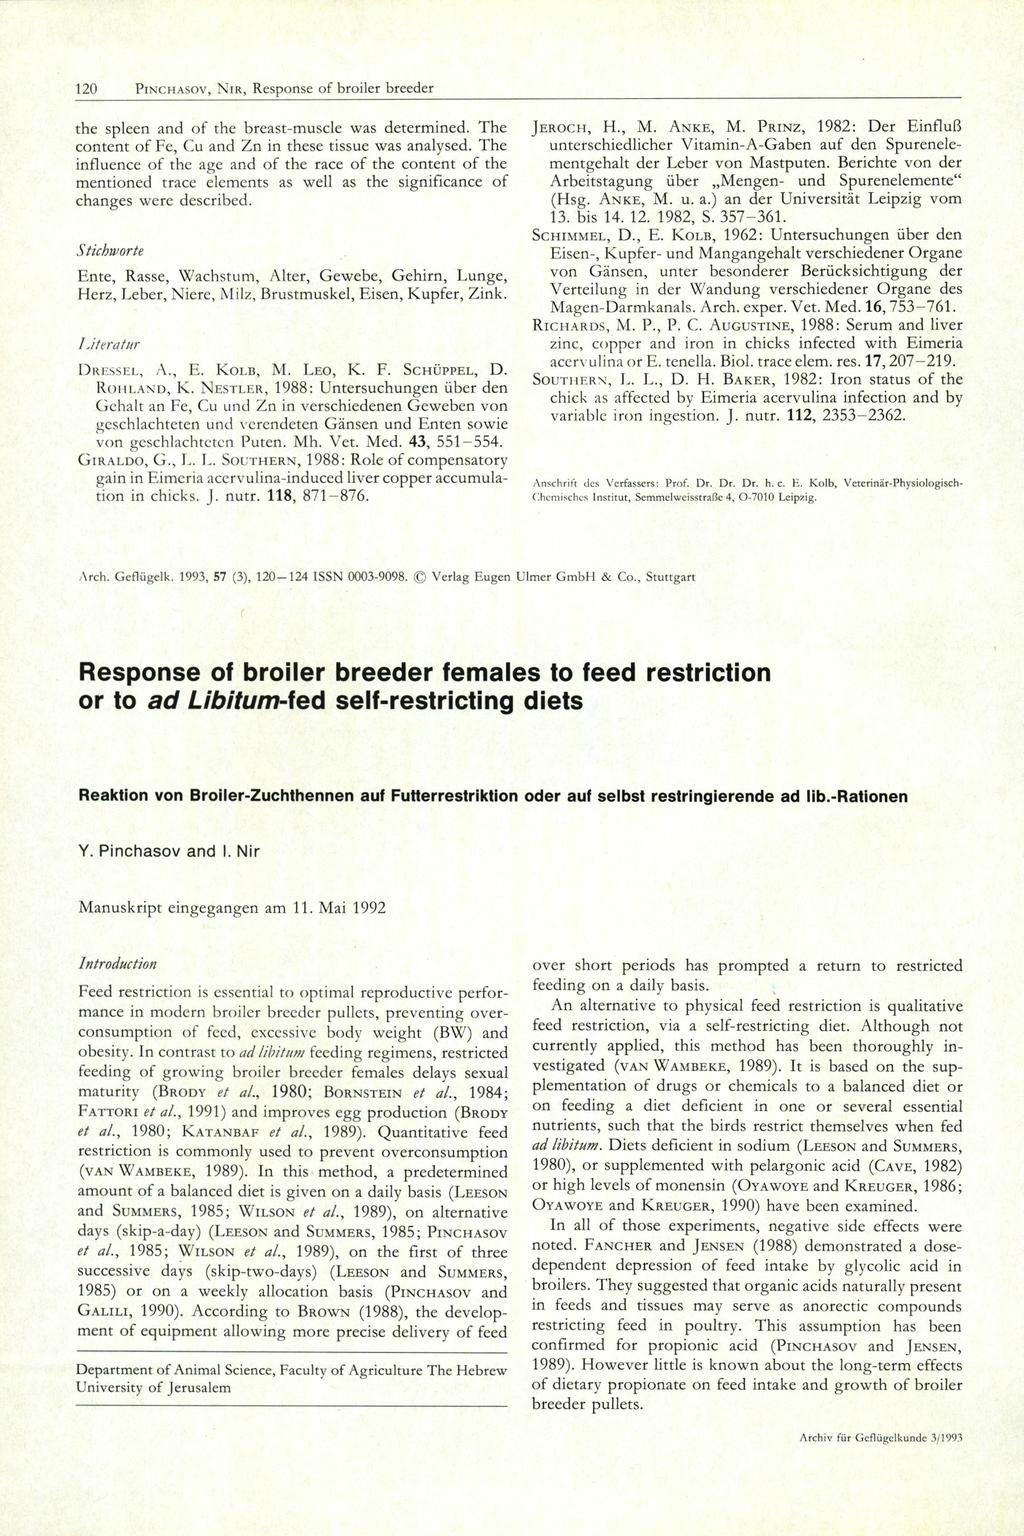 Response of broiler breeder females to feed restriction or to ad ...